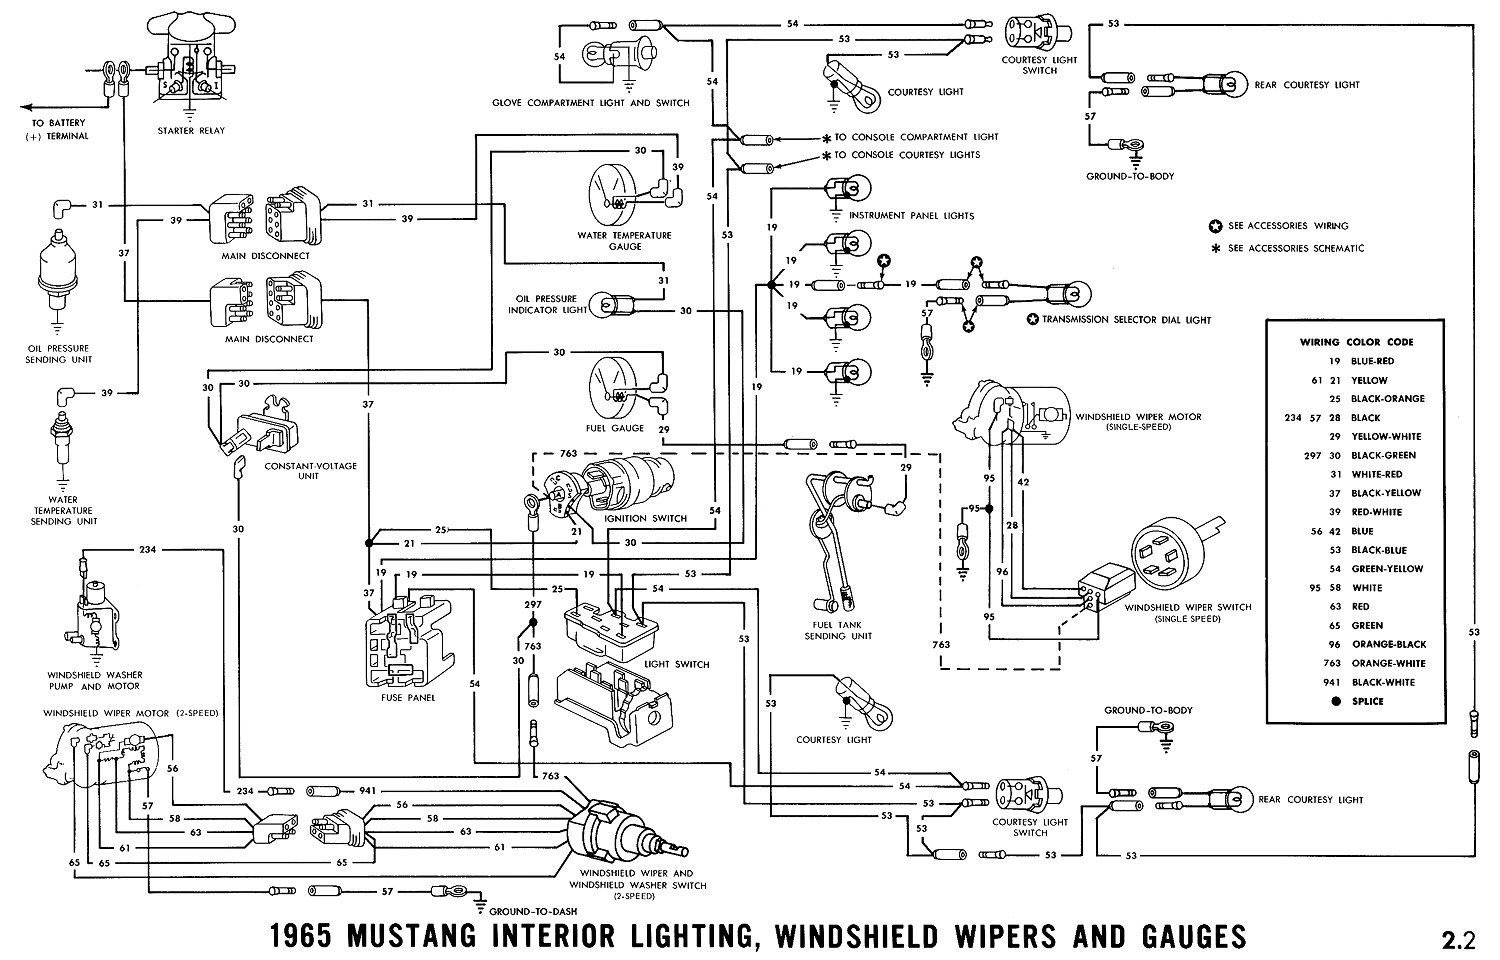 1965g 1965 mustang wiring diagrams average joe restoration 65 Chevy Truck Wiring Diagram at creativeand.co